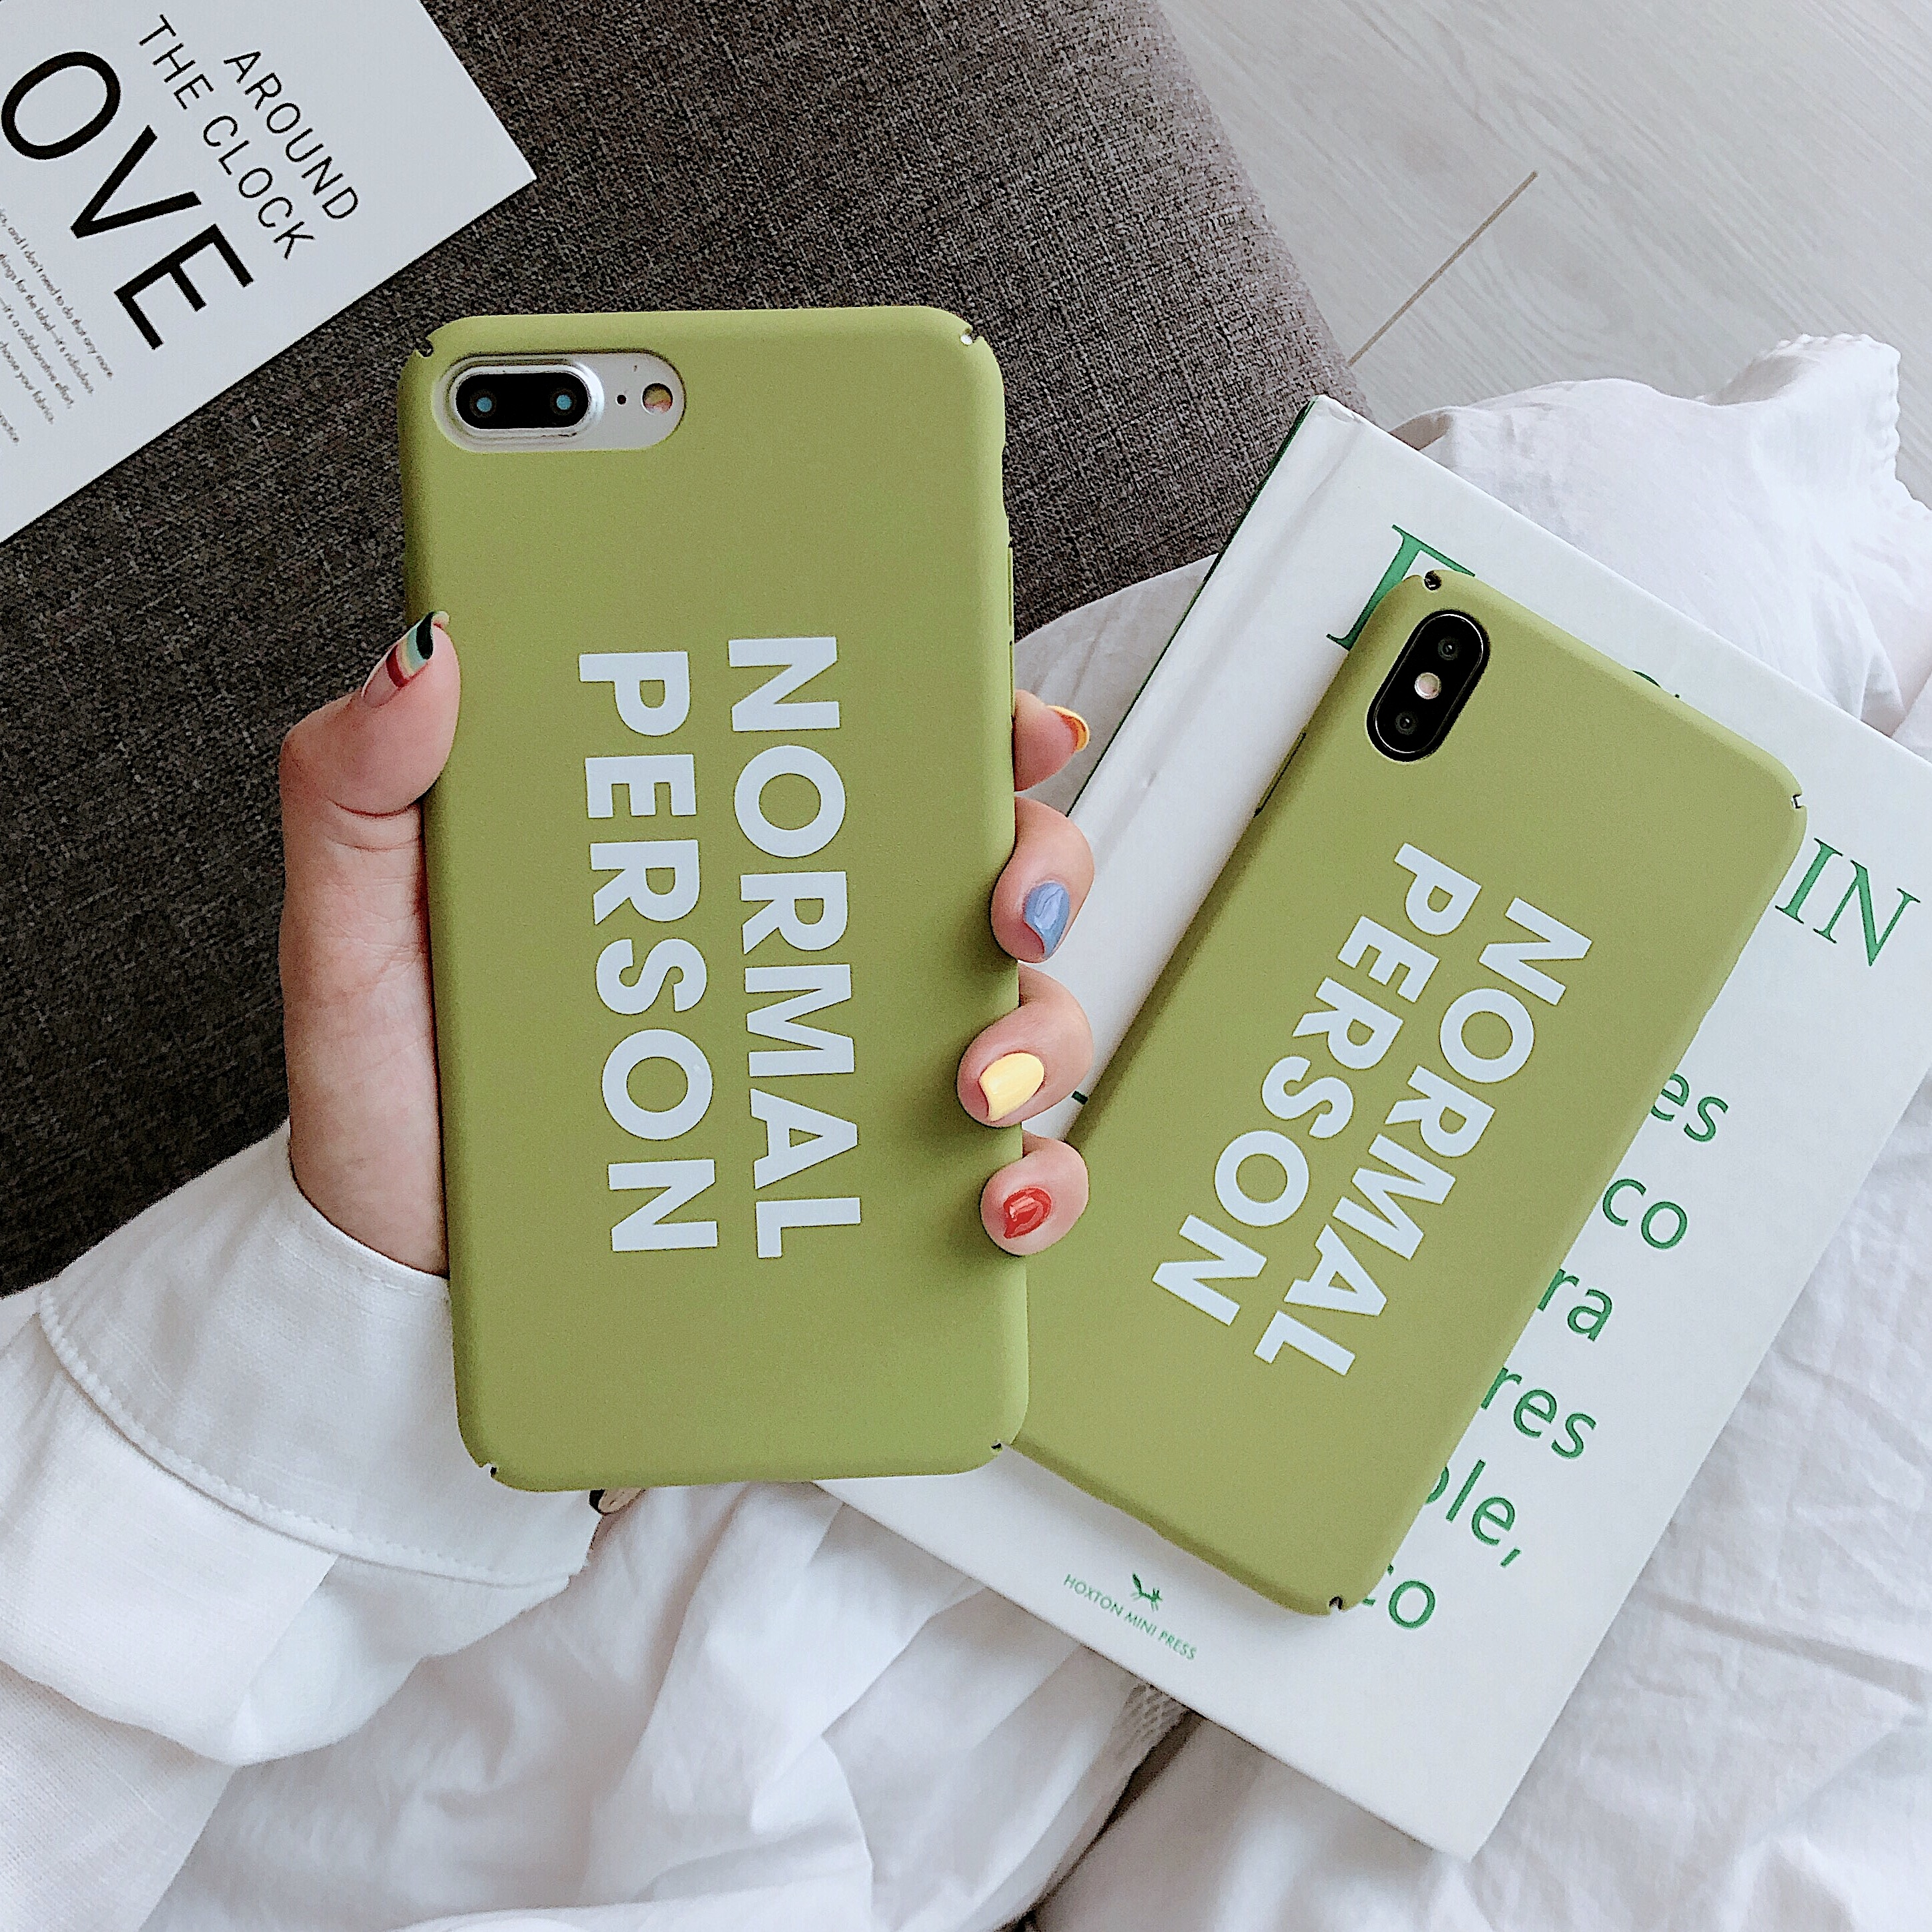 Hard PC case letters NORMAL PERSON for iPhone 7 8 6 s Plus X R S Max Phone fresh plain Matcha Green Case For